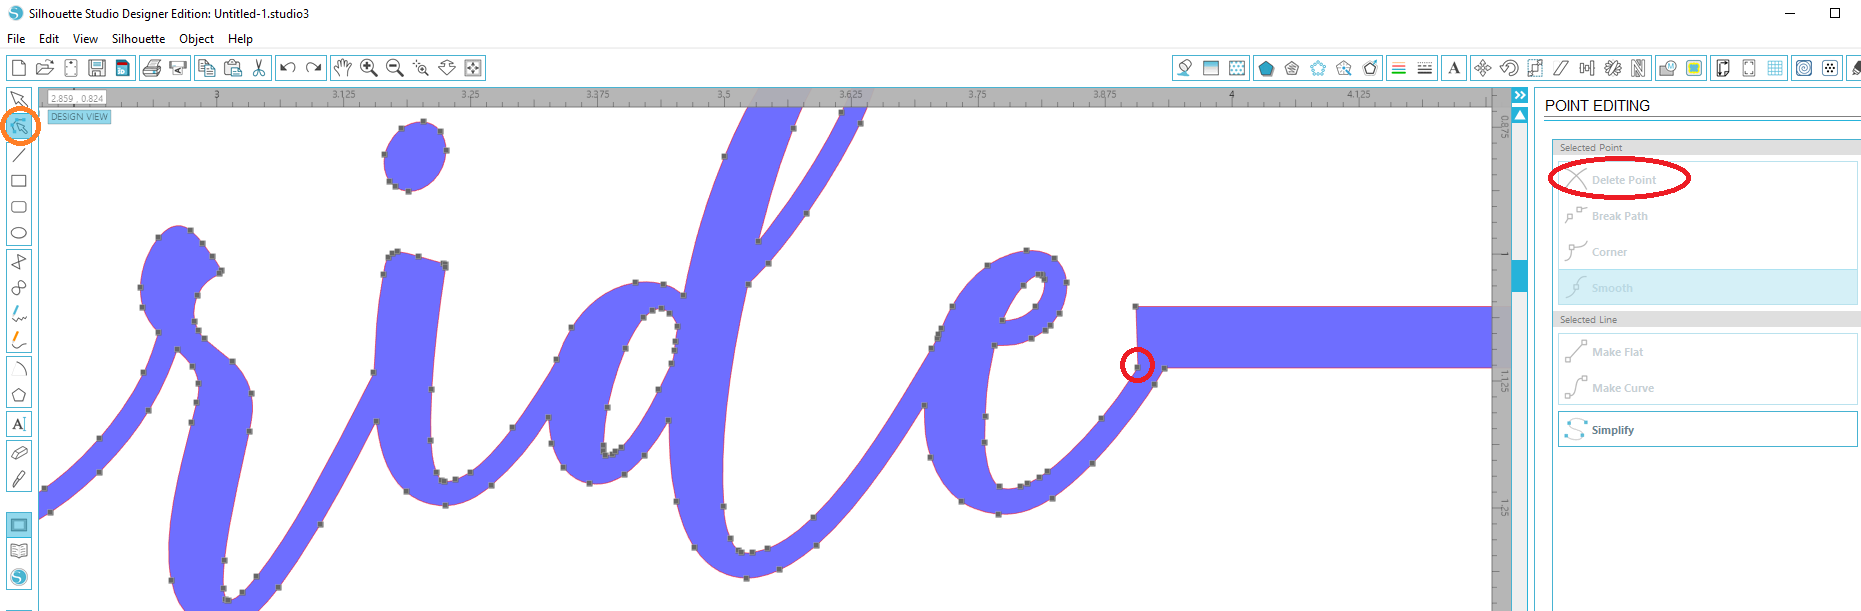 1861x611 How To Weld A Word To An Object In Silhouette Studio Cut That Design